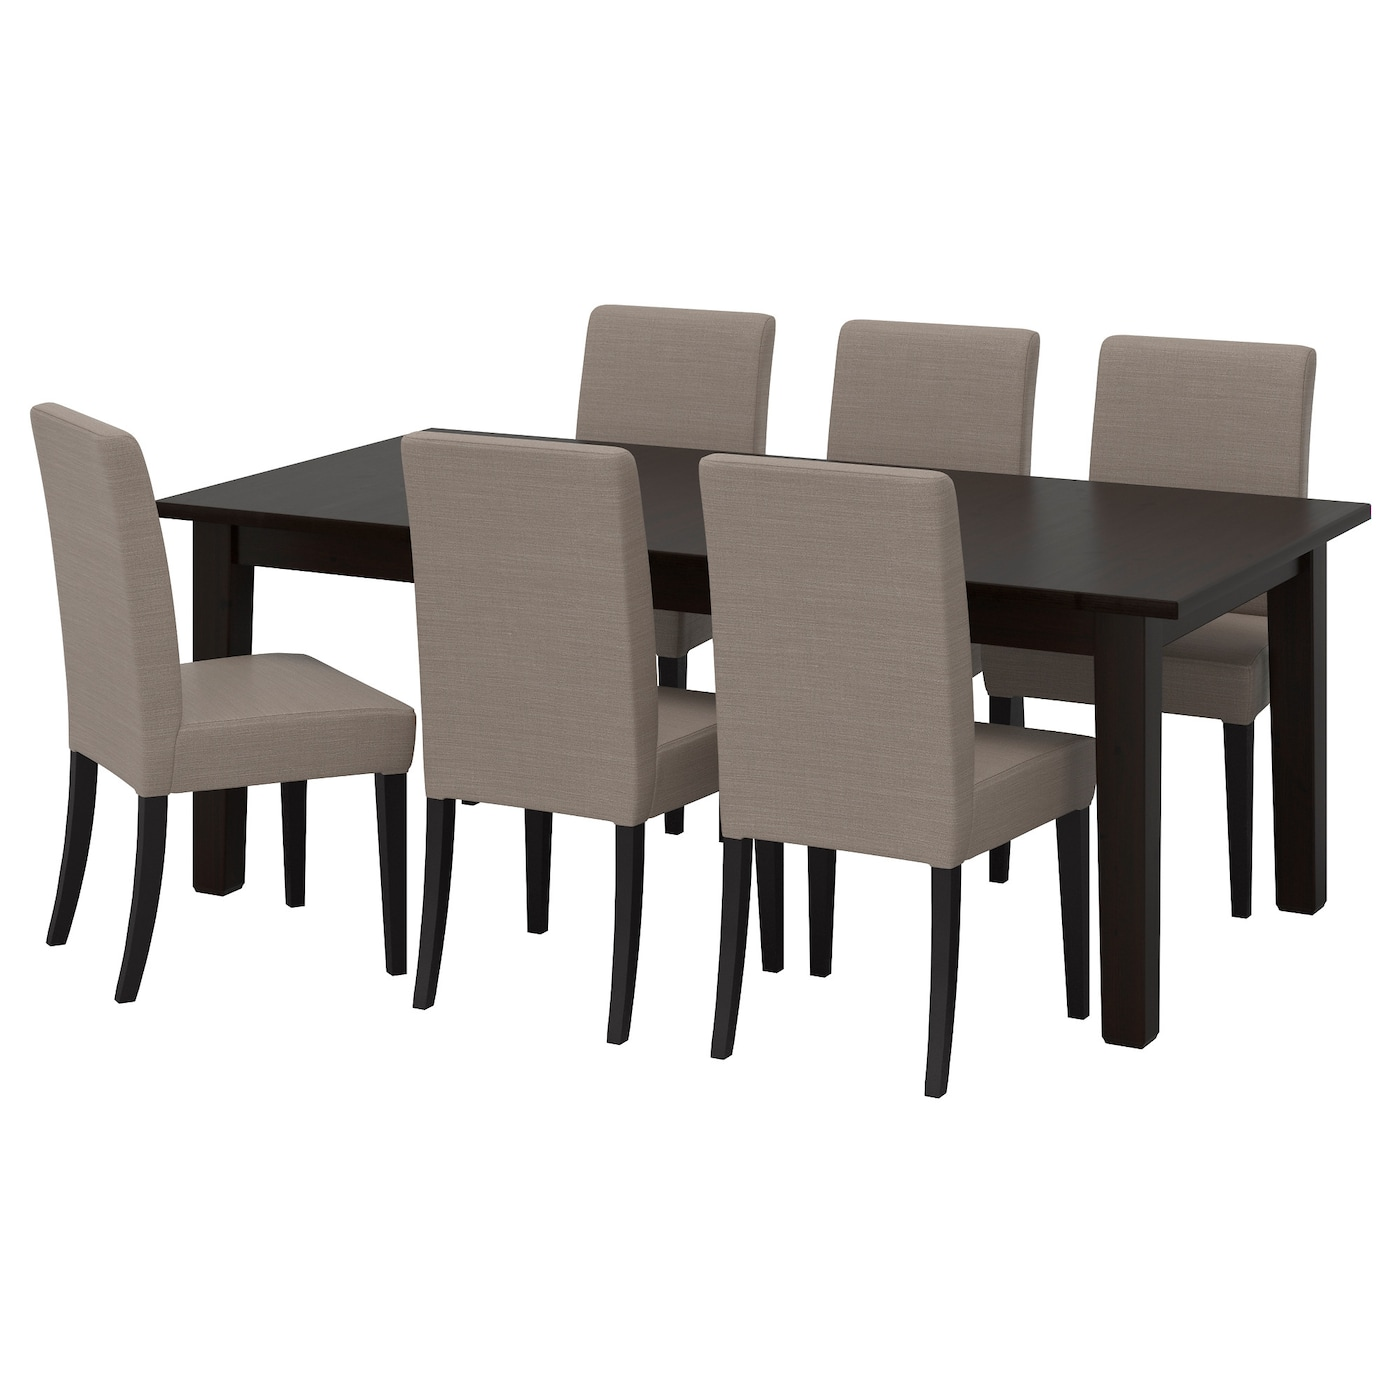 6 Seater Dining Table Chairs IKEA